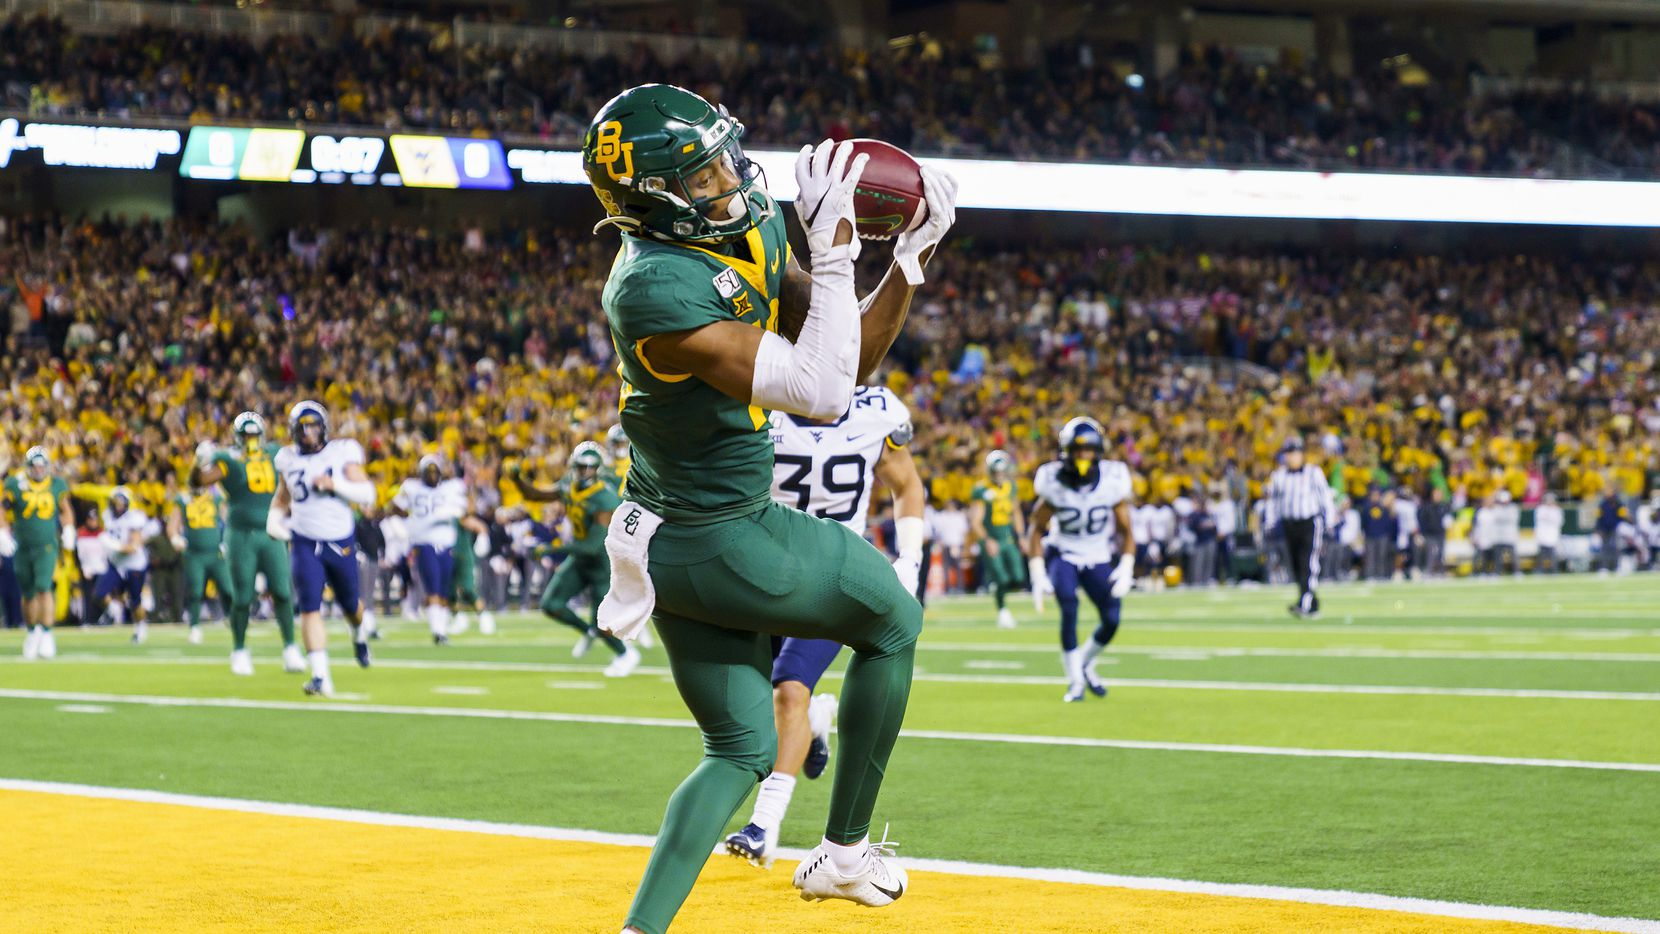 Baylor wide receiver R.J. Sneed (13) hauls in a 13-yard touchdown pass from quarterback Charlie Brewer during the first half of an NCAA football game against the West Virginia at McLane Stadium on Thursday, Oct. 31, 2019, in Waco, Texas.